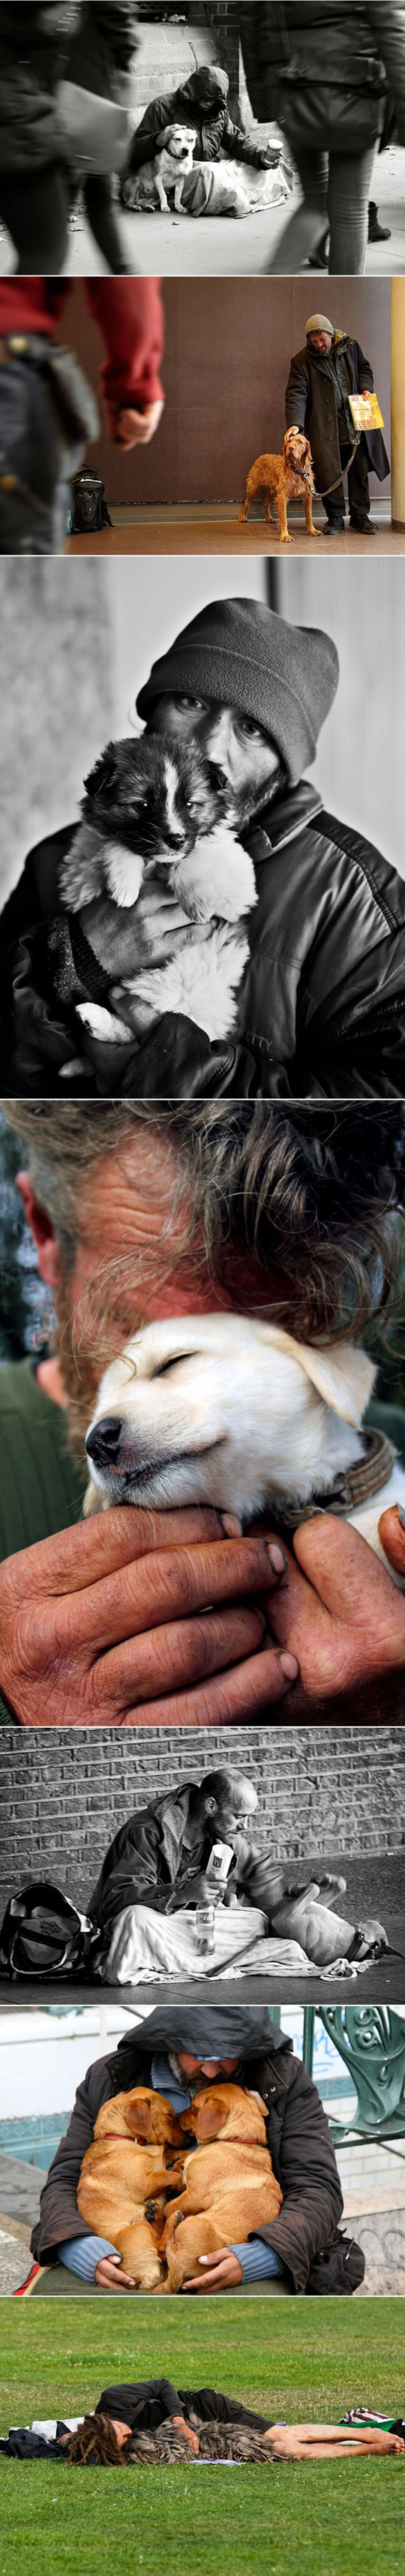 cool-pet-homeless-love-street